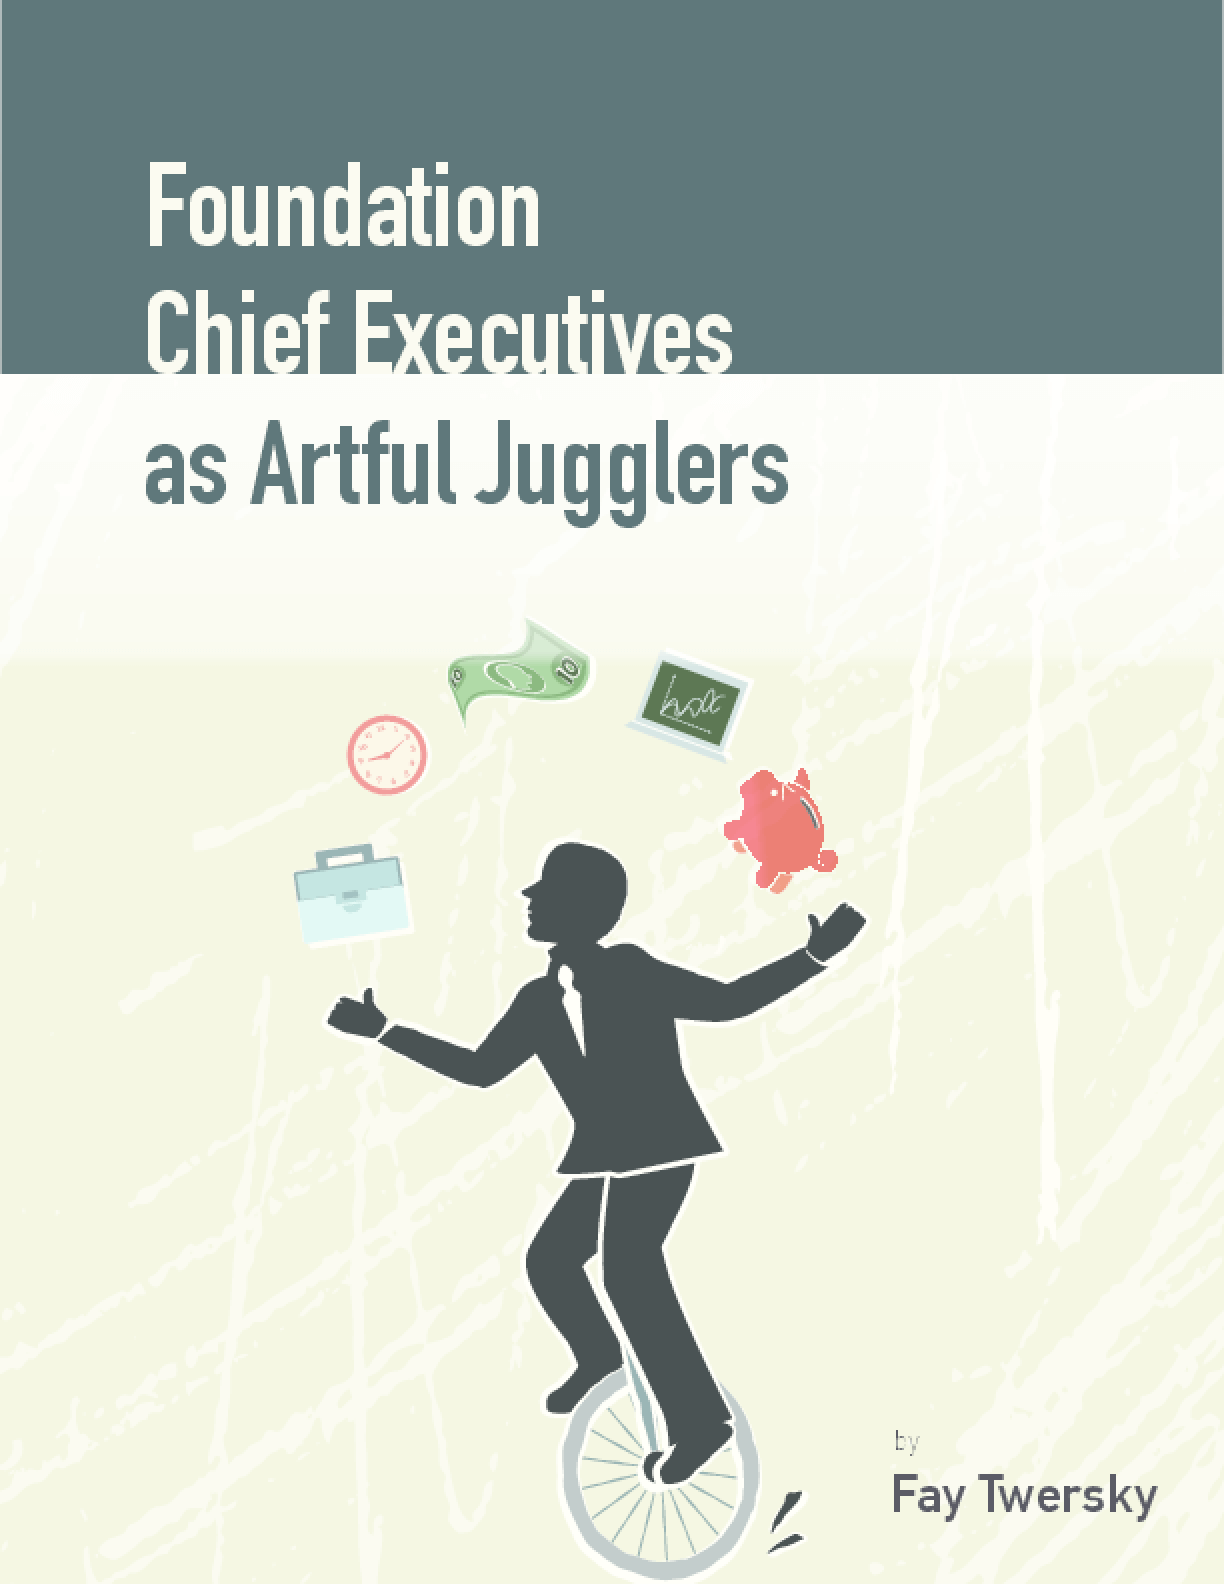 Foundation Chief Executives as Artful Jugglers